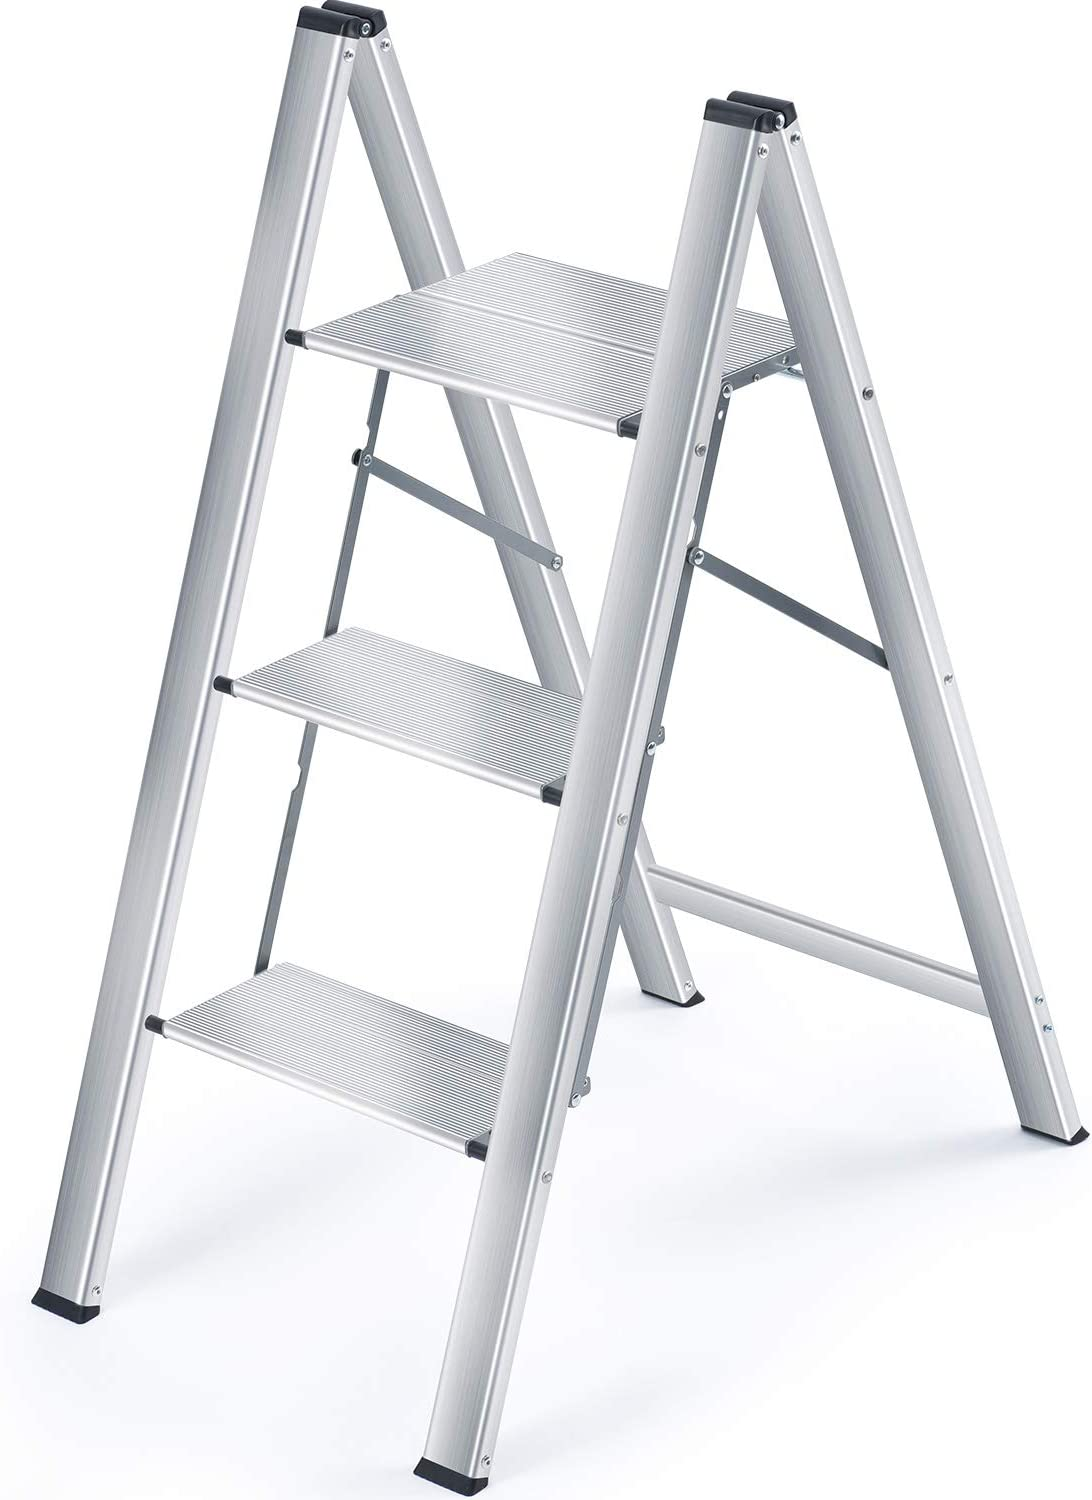 KINGRACK Step Ladder, 3 Step Aluminium Folding Ladder,Portable Slim Step Stool, Safety Household Ladder Stepladder with Milti-fuction